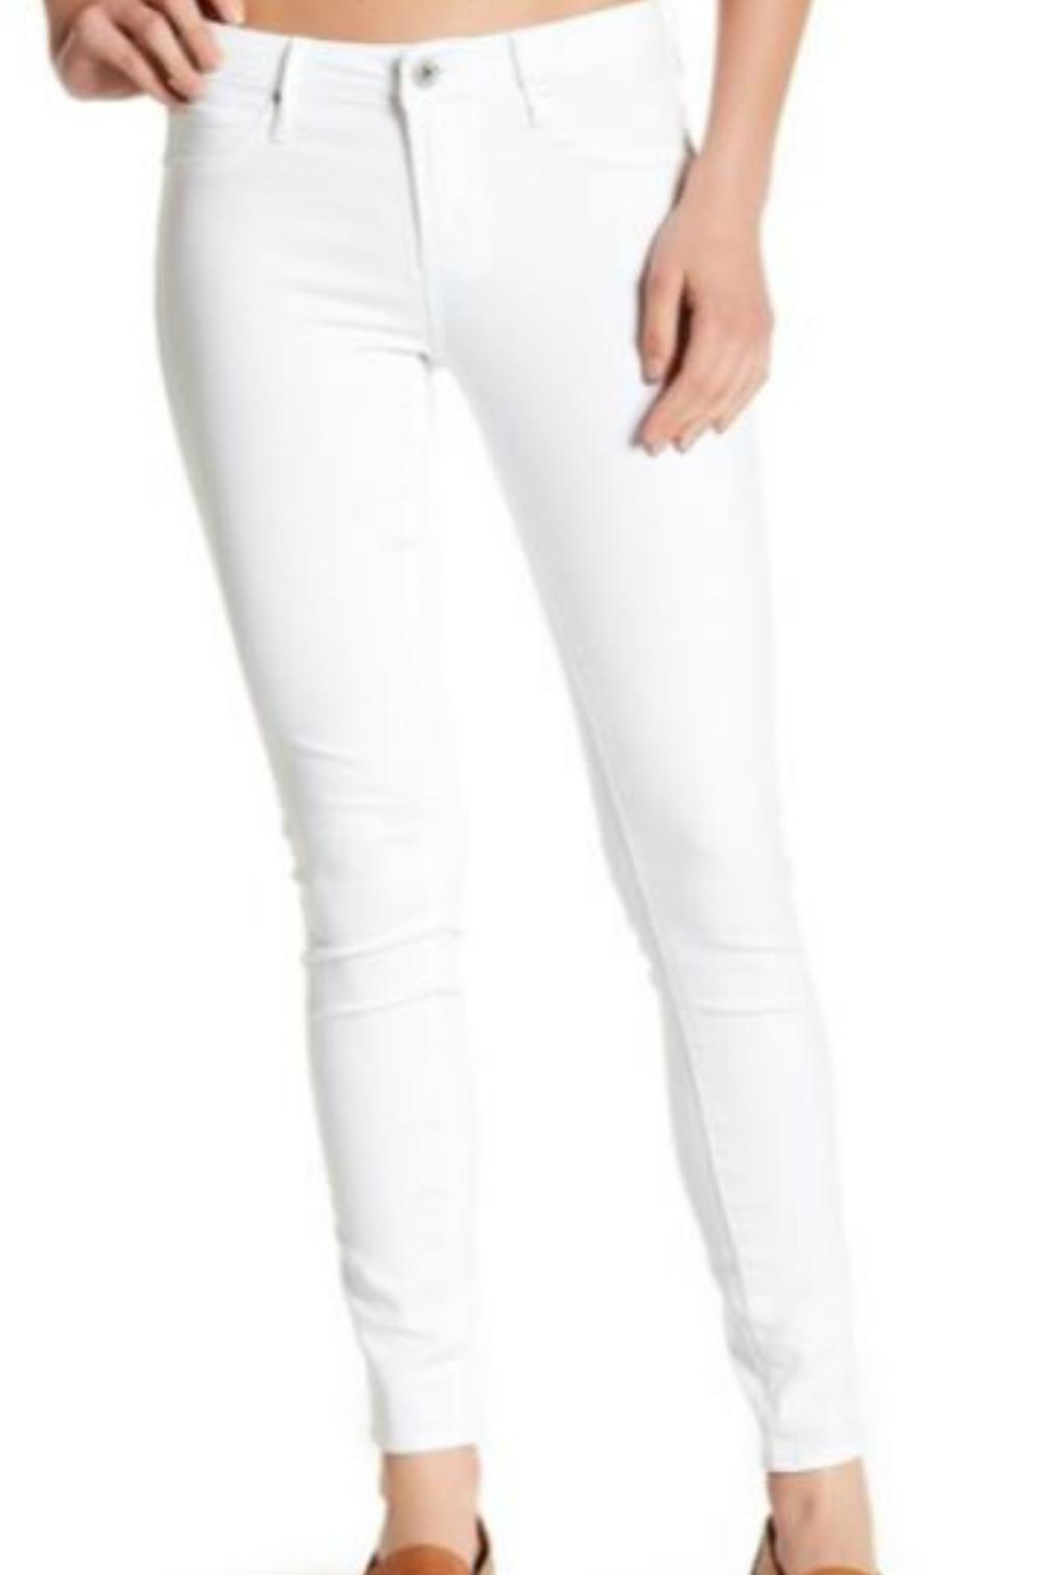 Articles of Society White Skinny Jeans - Main Image